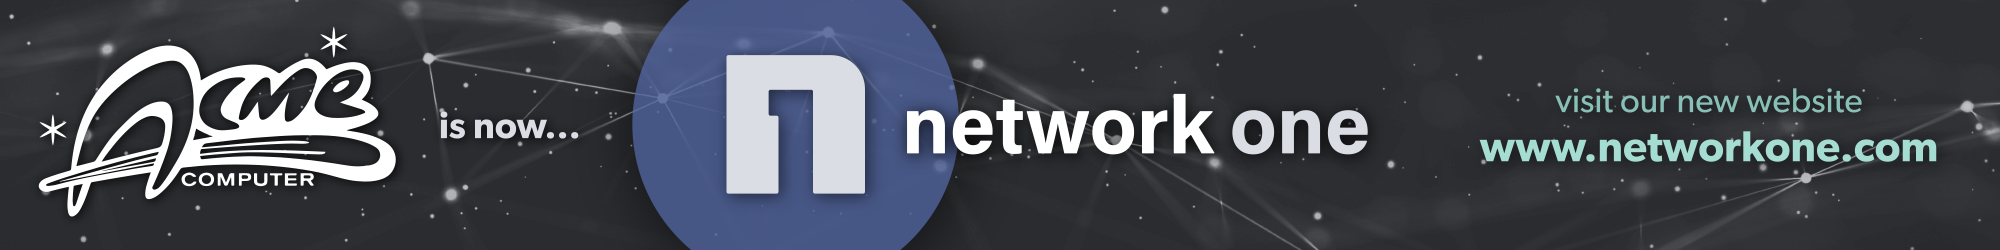 Acme is now Network One